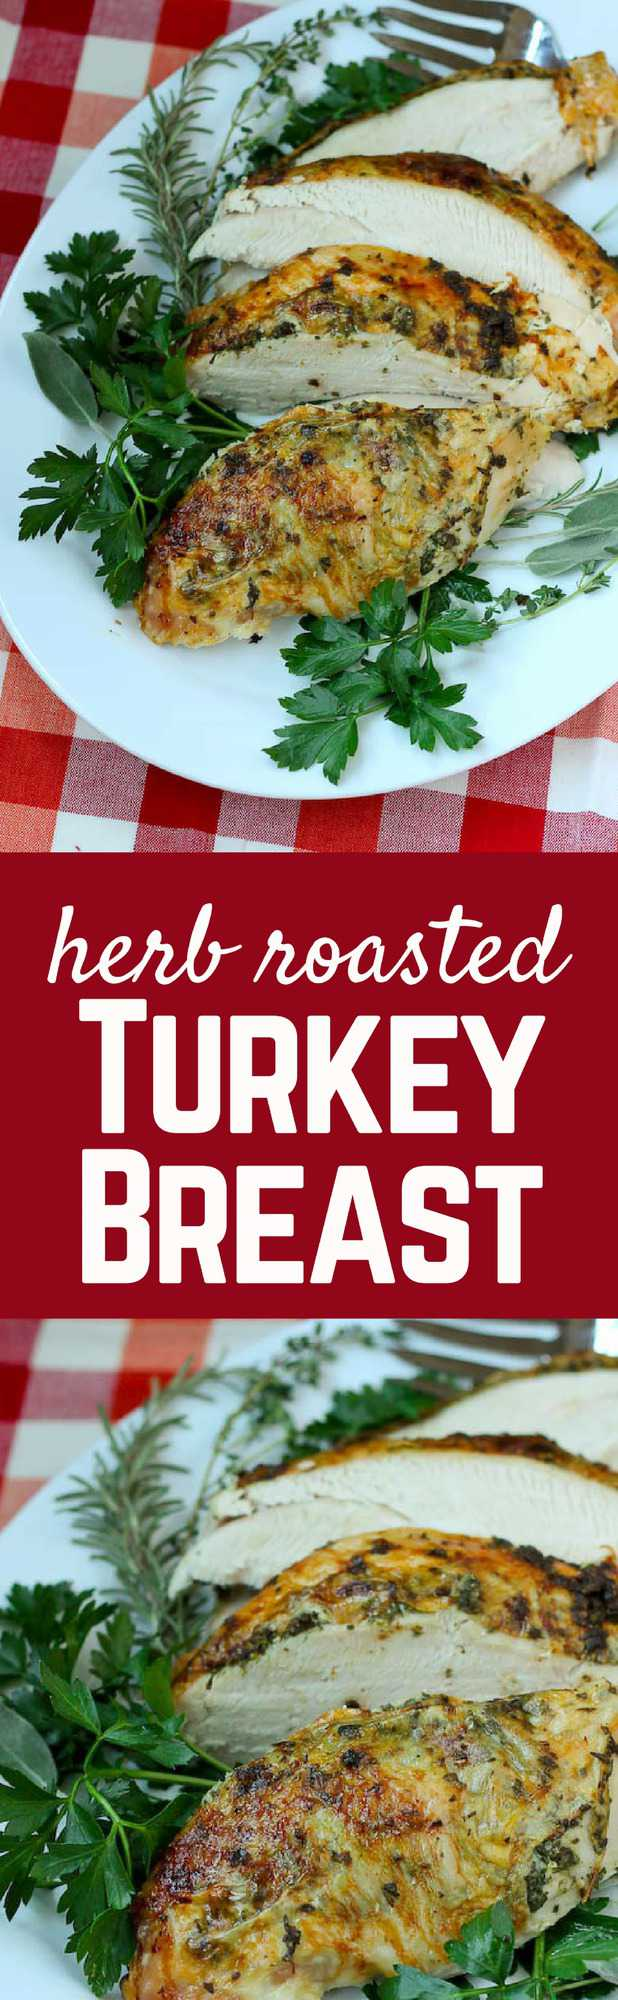 This herb roasted turkey breast is a delicious and flavorful idea for Thanksgiving dinner. Great for smaller families or people who don't like dark meat! Get the recipe on RachelCooks.com!